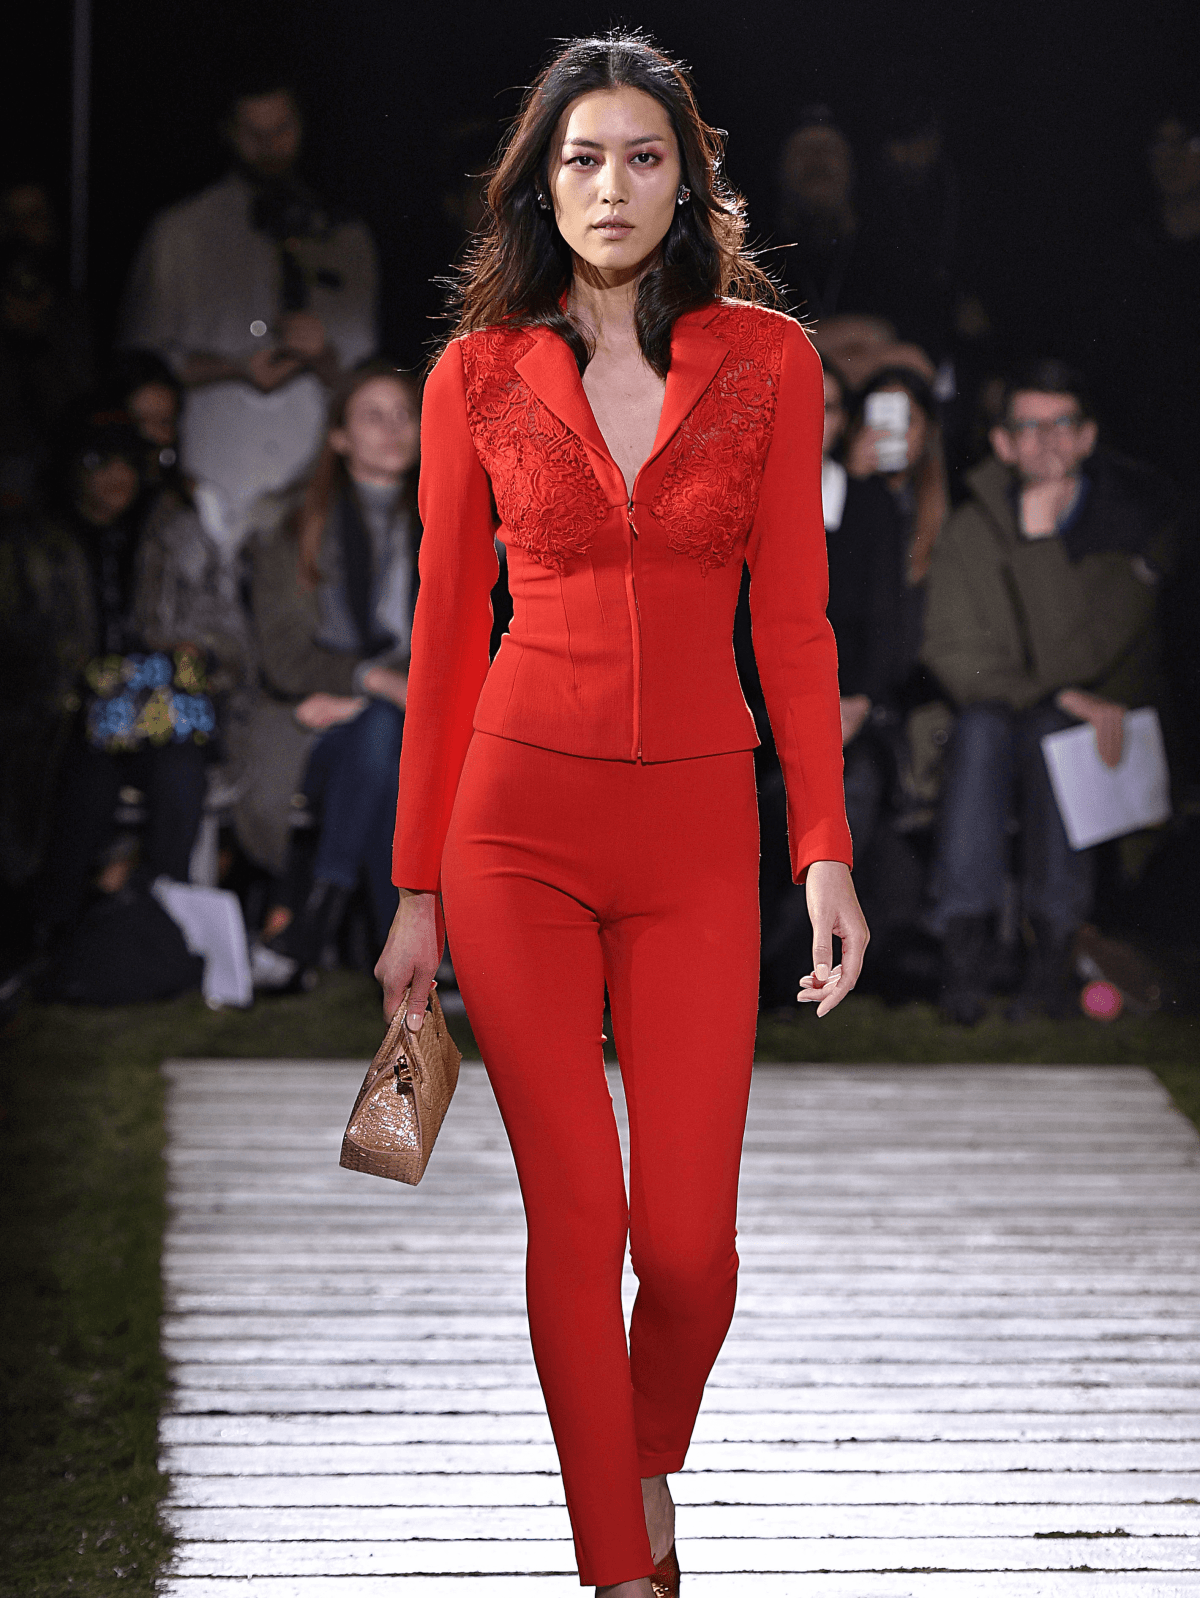 Houston, NYFW La Perla, Feb 2017, tomato red embroidered stretch wool jacket and slacks